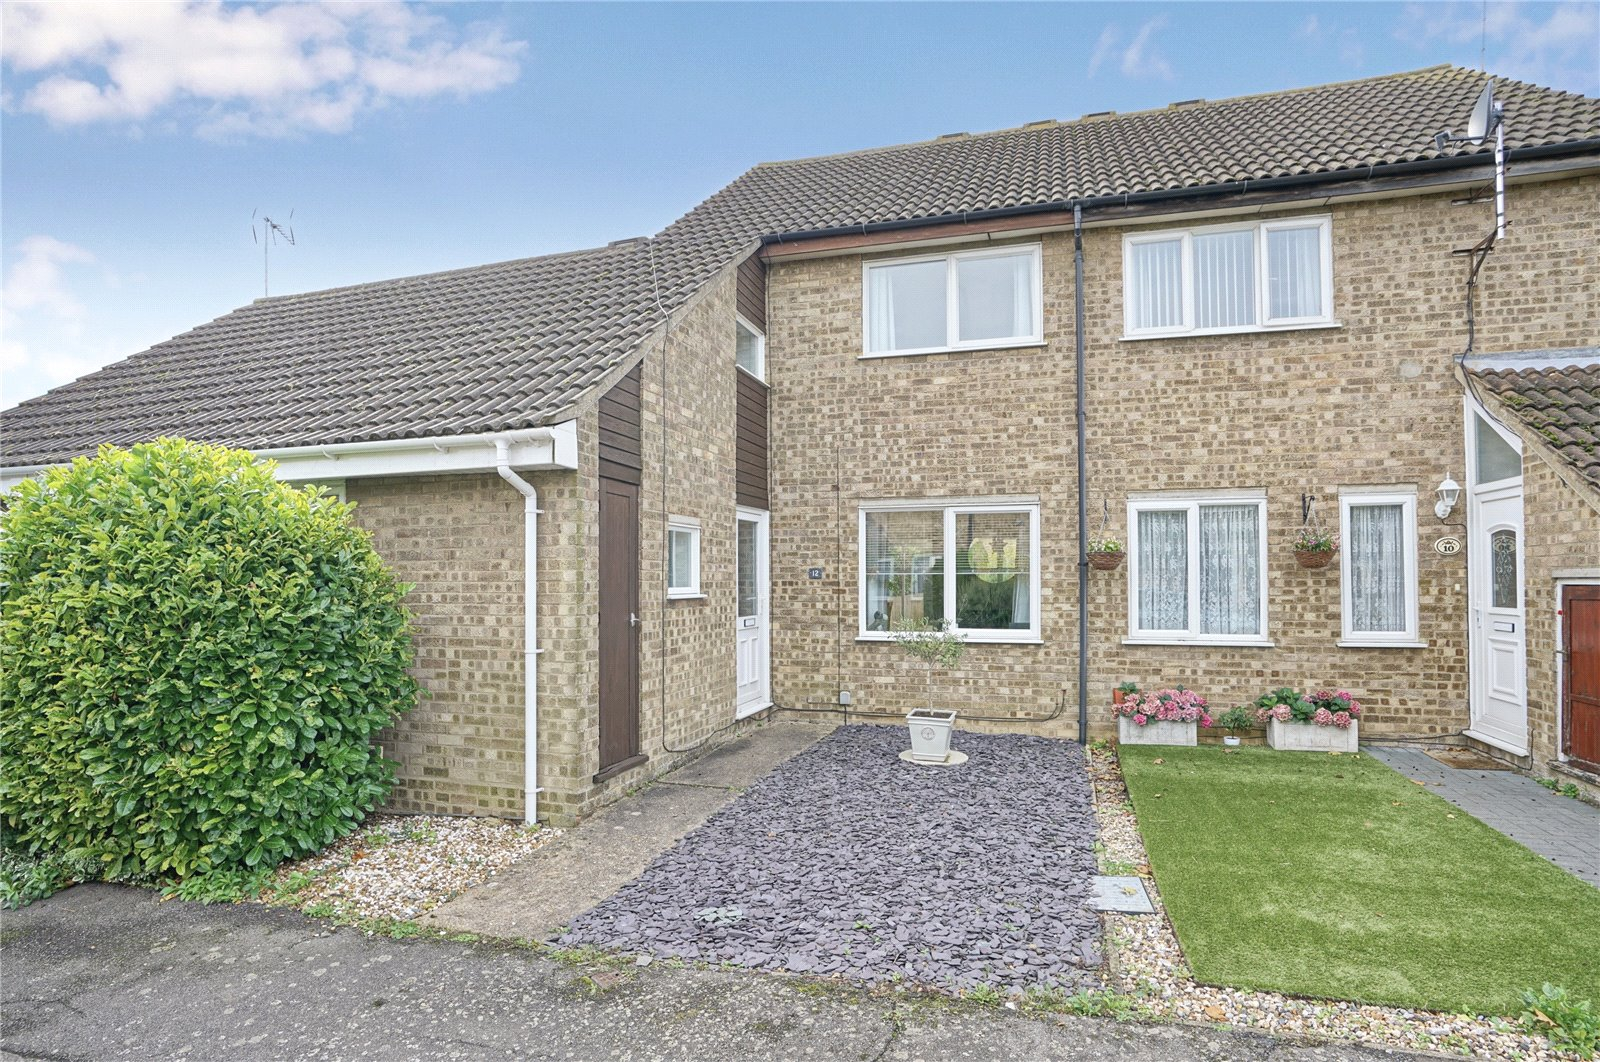 3 bed house for sale in St. Ives, PE27 3DB  - Property Image 1